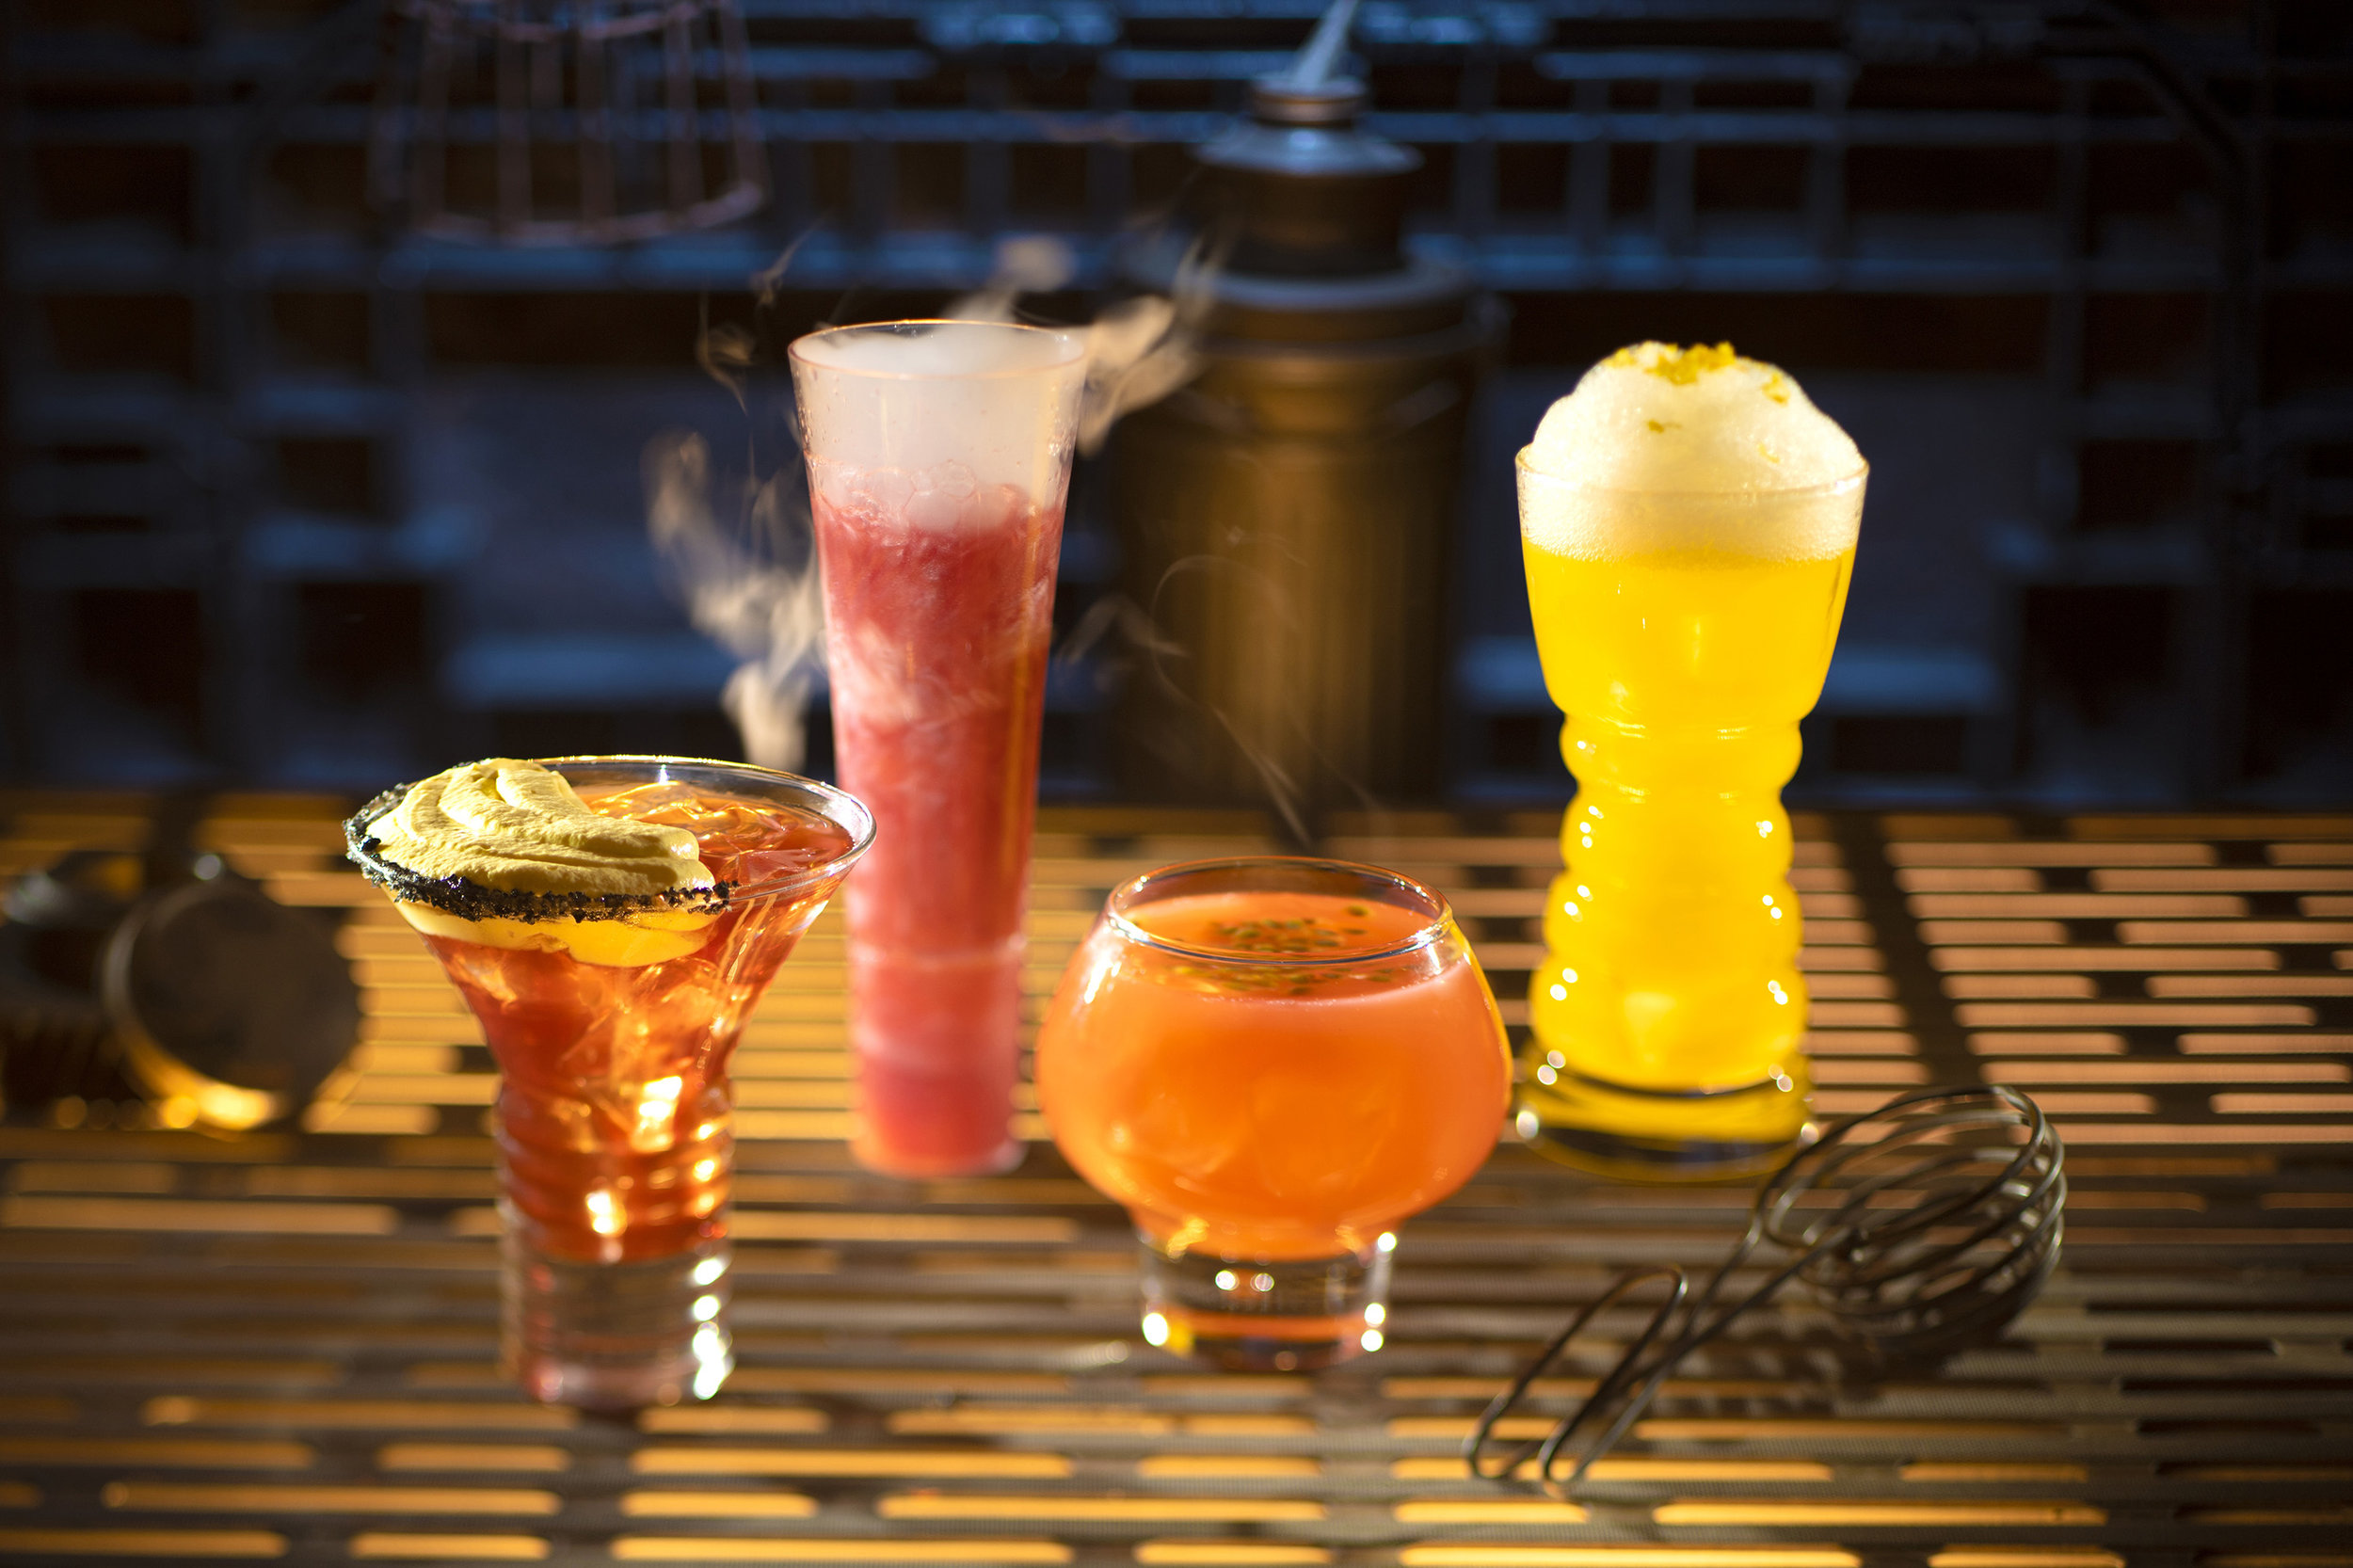 Guests will discover innovative and creative concoctions from around the galaxy at Star Wars: Galaxy's Edge at Disneyland Park in Anaheim, California and at Disney's Hollywood Studios in Lake Buena Vista, Florida. From left to right, alcoholic beverages: The Outer Rim, Bespin Fizz, Yub Nub, and Fuzzy Tauntaun can be found at Oga's Cantina. (Kent Phillips/Disney Parks)